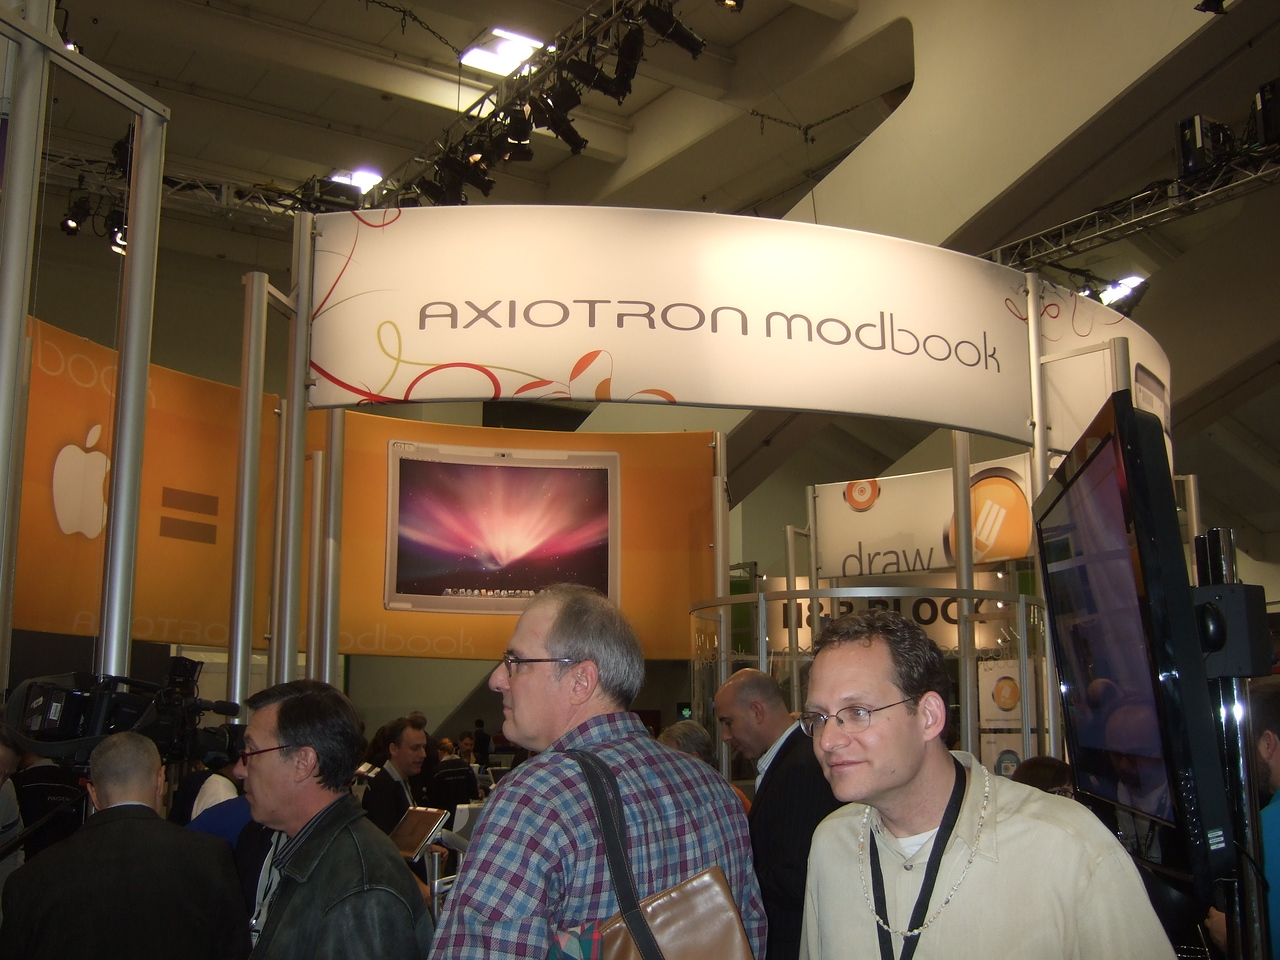 The Axiotron Modbook is a Macbook Tablet conversion.